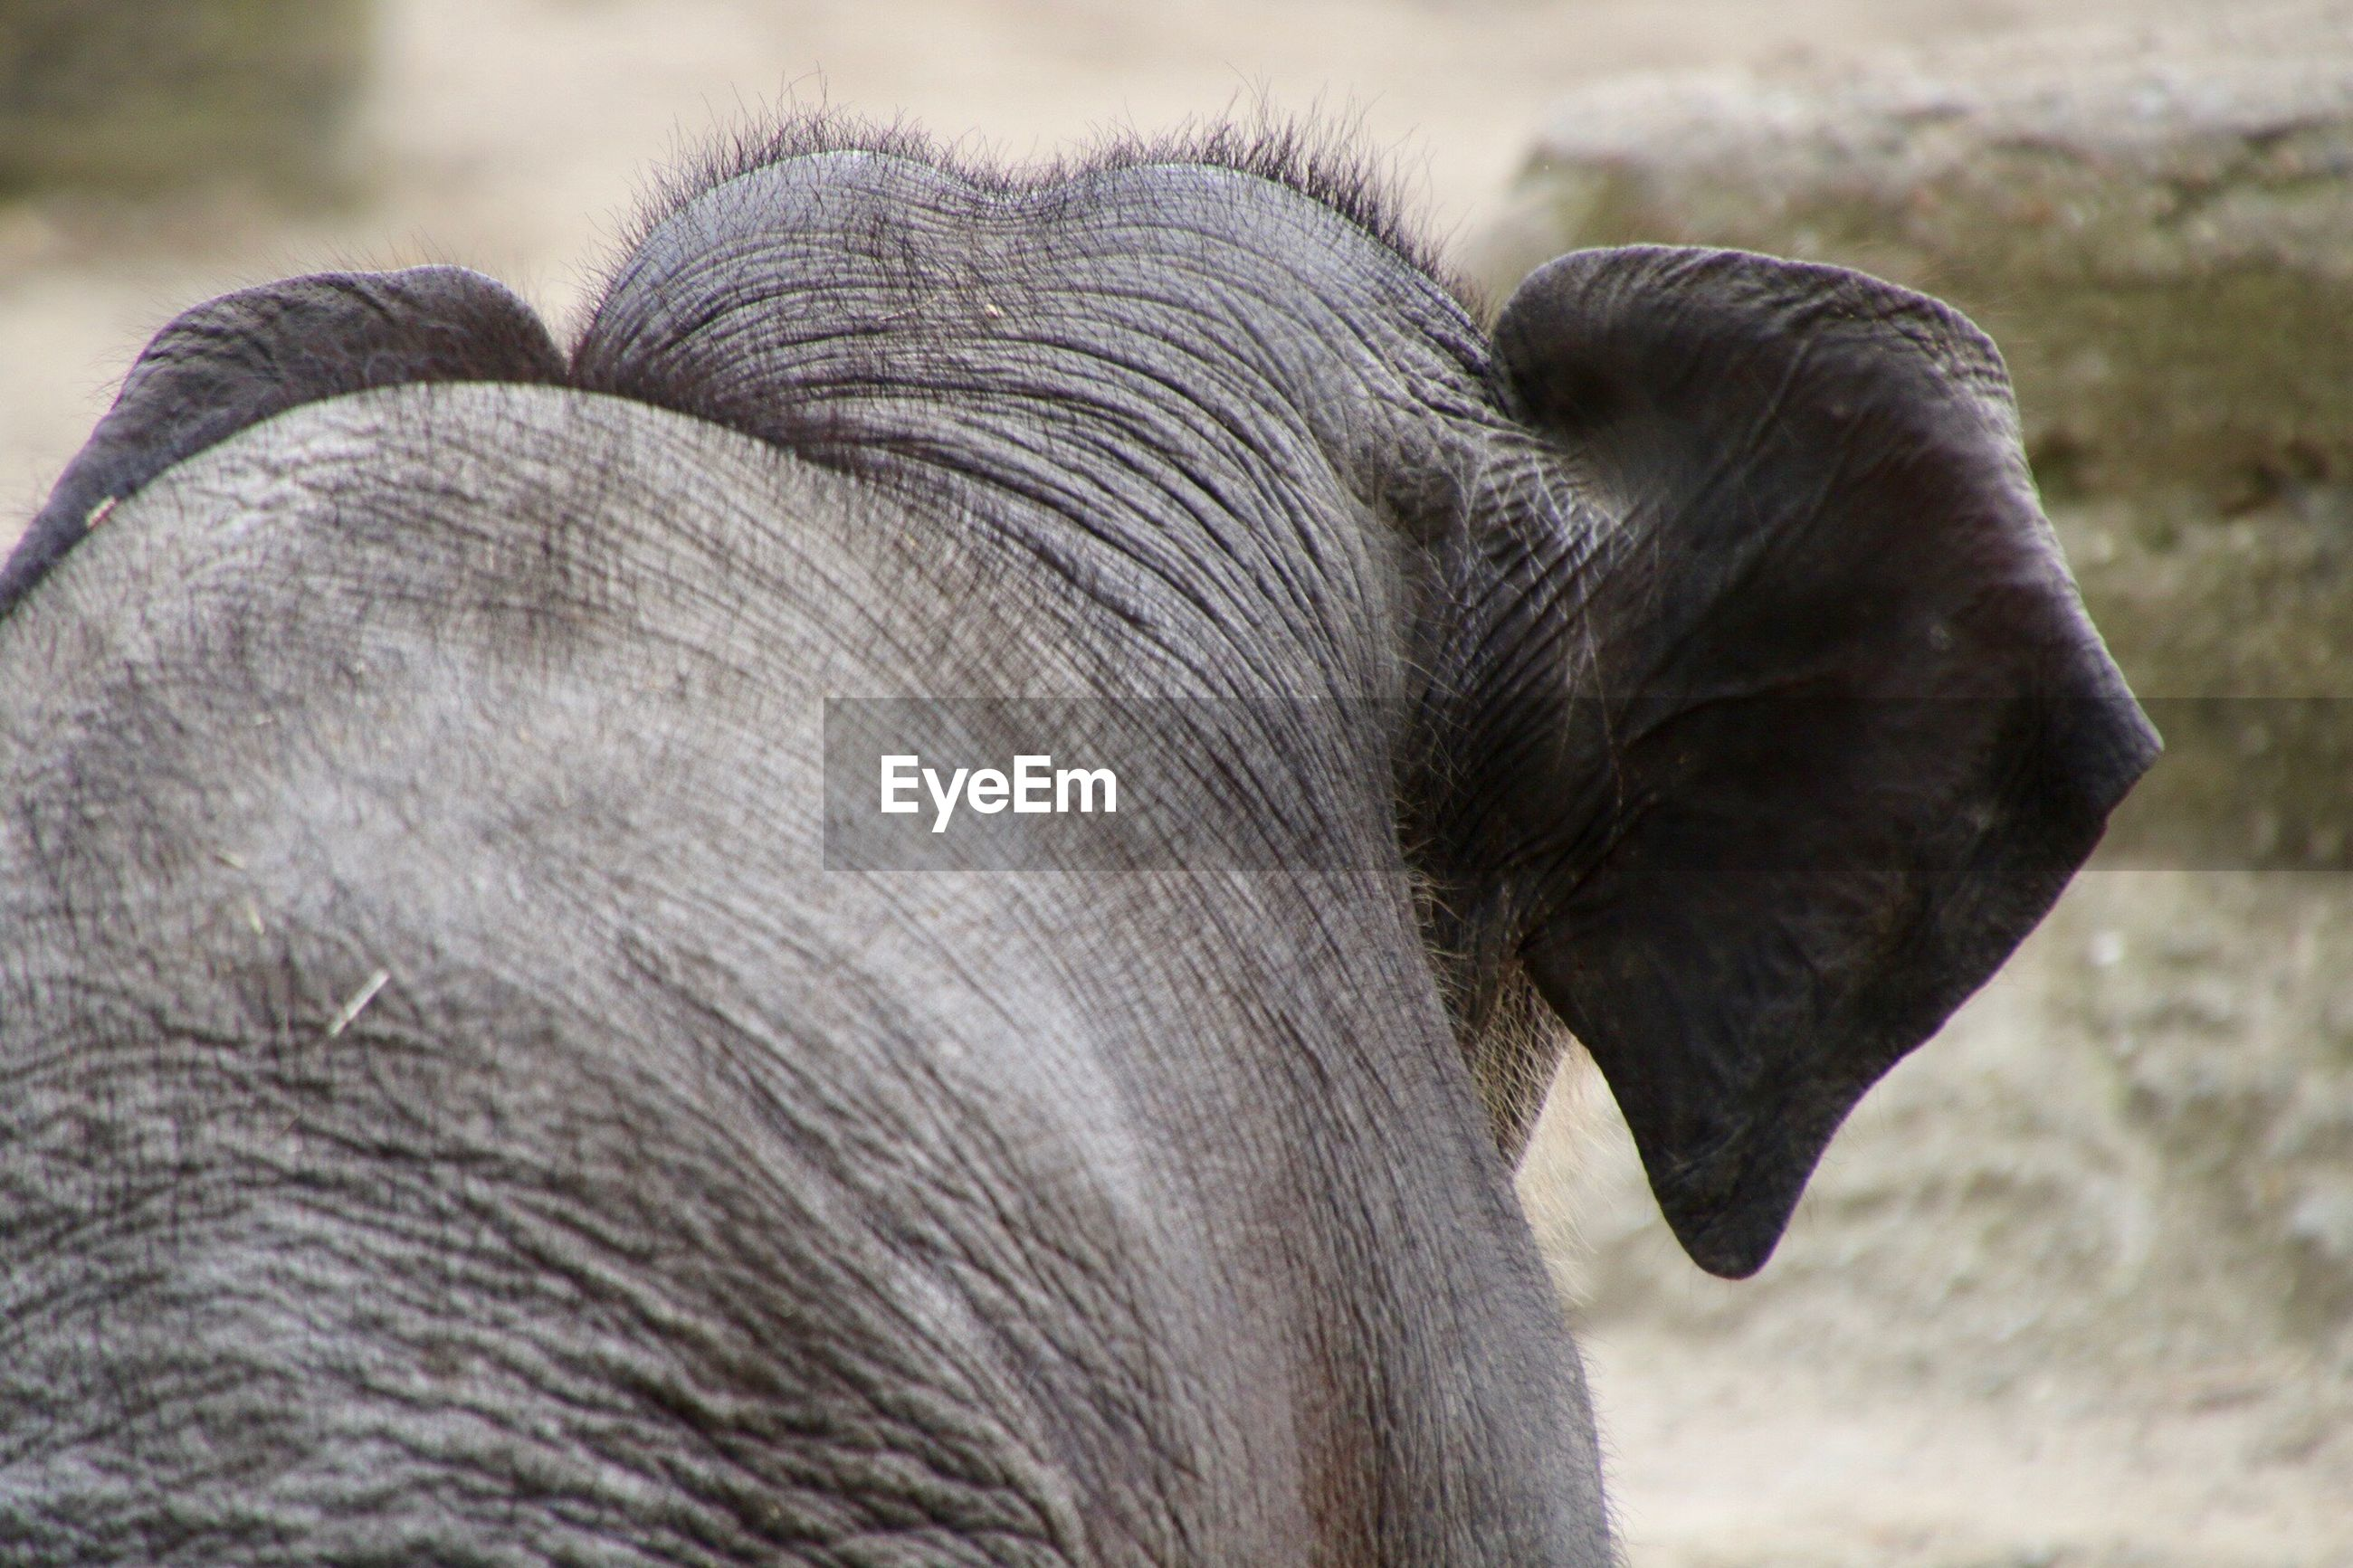 CLOSE-UP OF ELEPHANT IN A FIELD